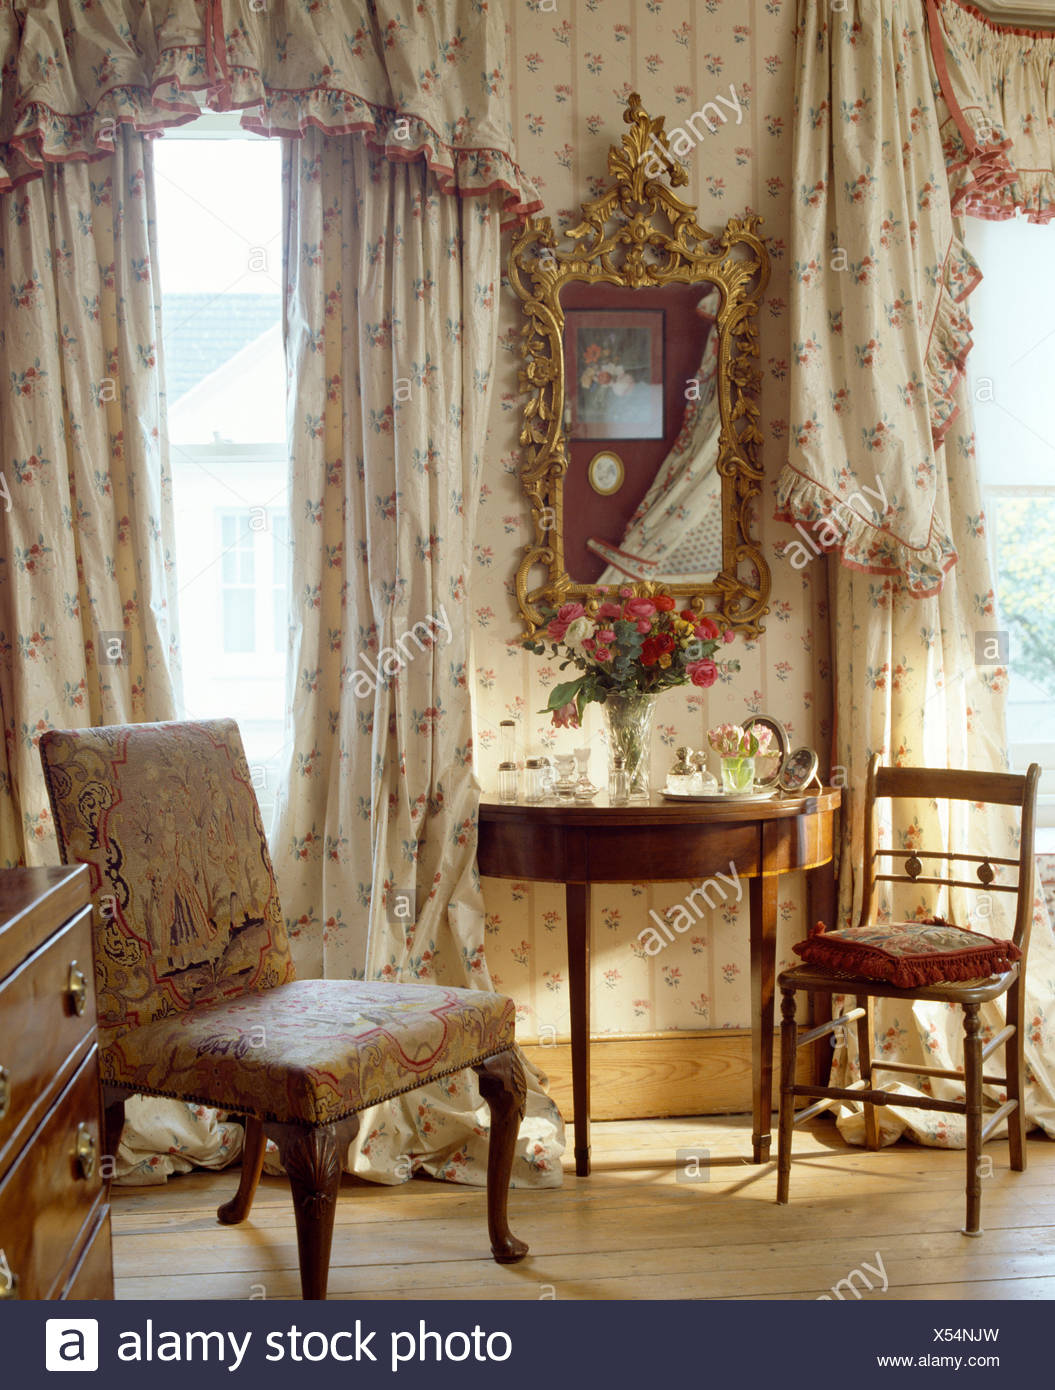 Floral Curtains And Pelmet On Windows In Bedroom With Antique Gilt Mirror  Above Antique Console Table